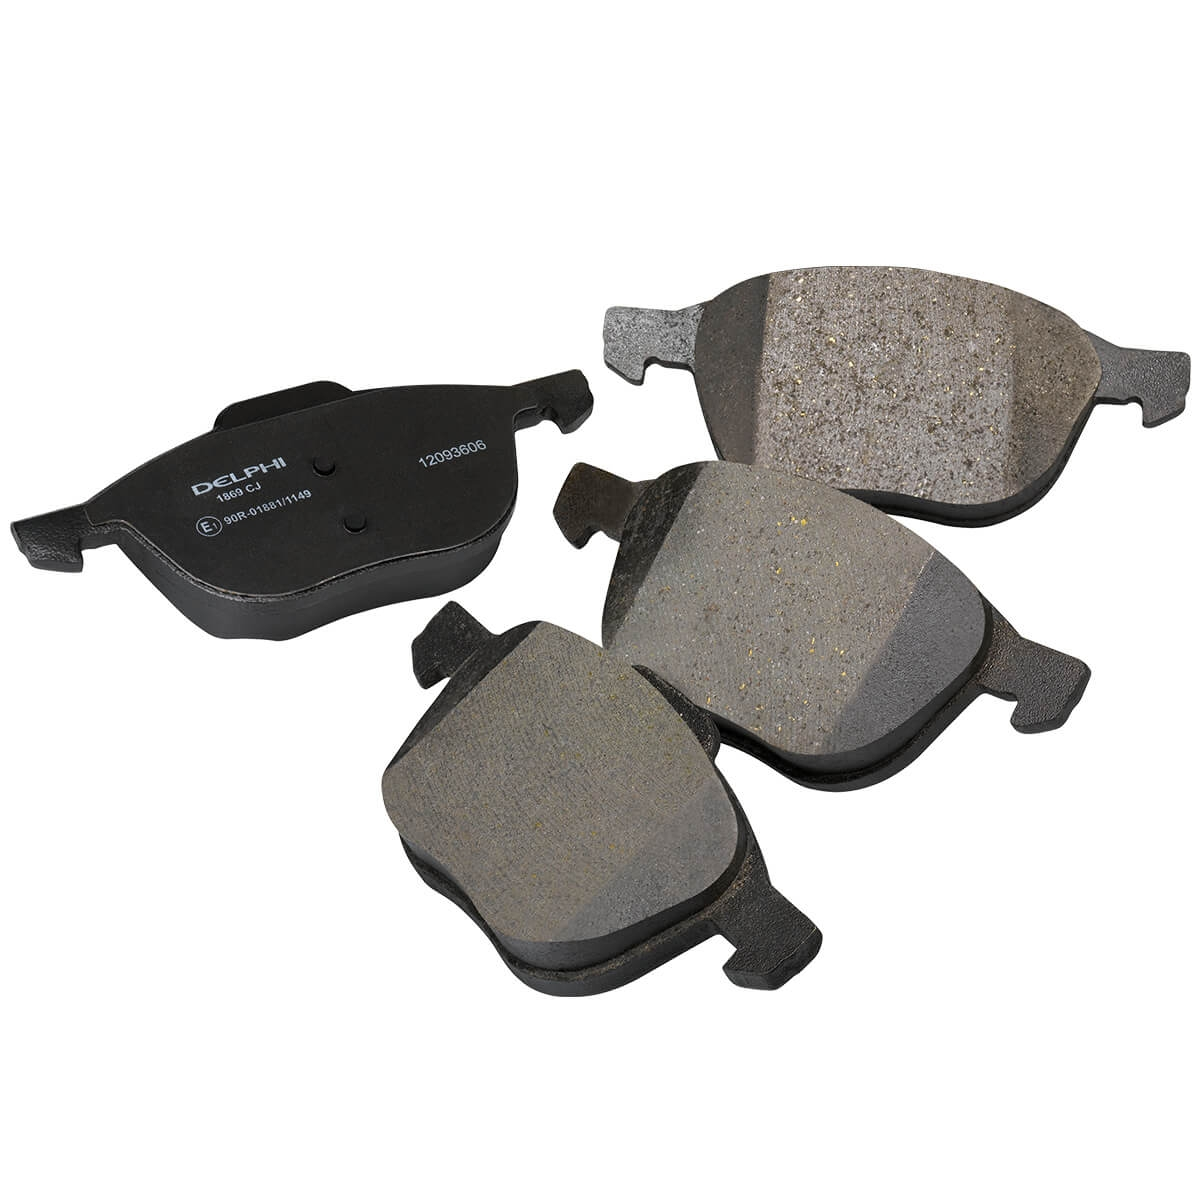 CITROEN C4 SPACETOURER Brake Pad Set